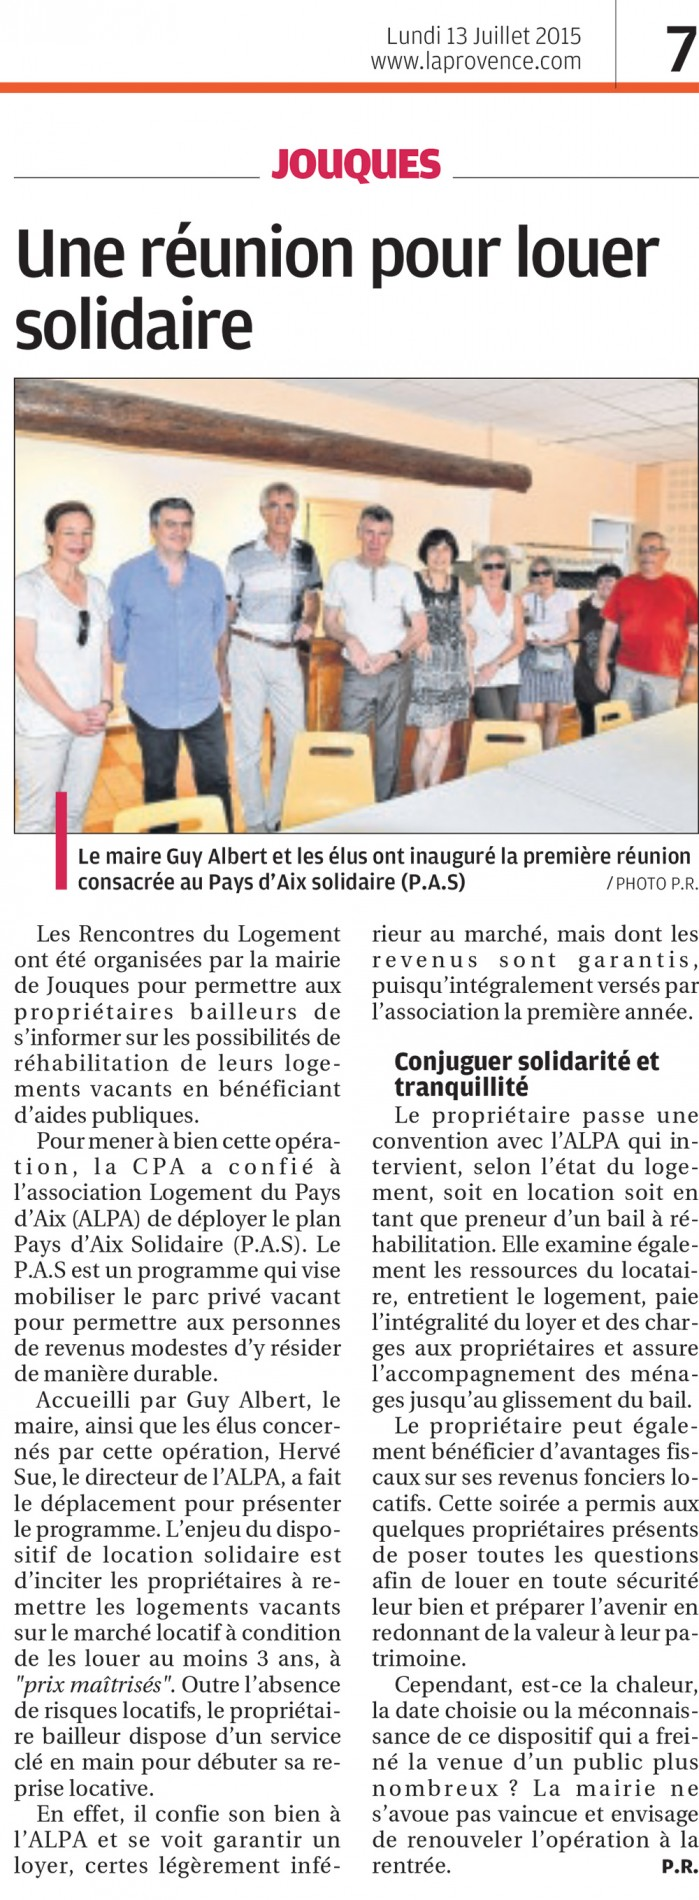 [AIXPR - 7]  BLP/BOUCHES/EDIT_AIX/30.PAGES ... 13/07/15